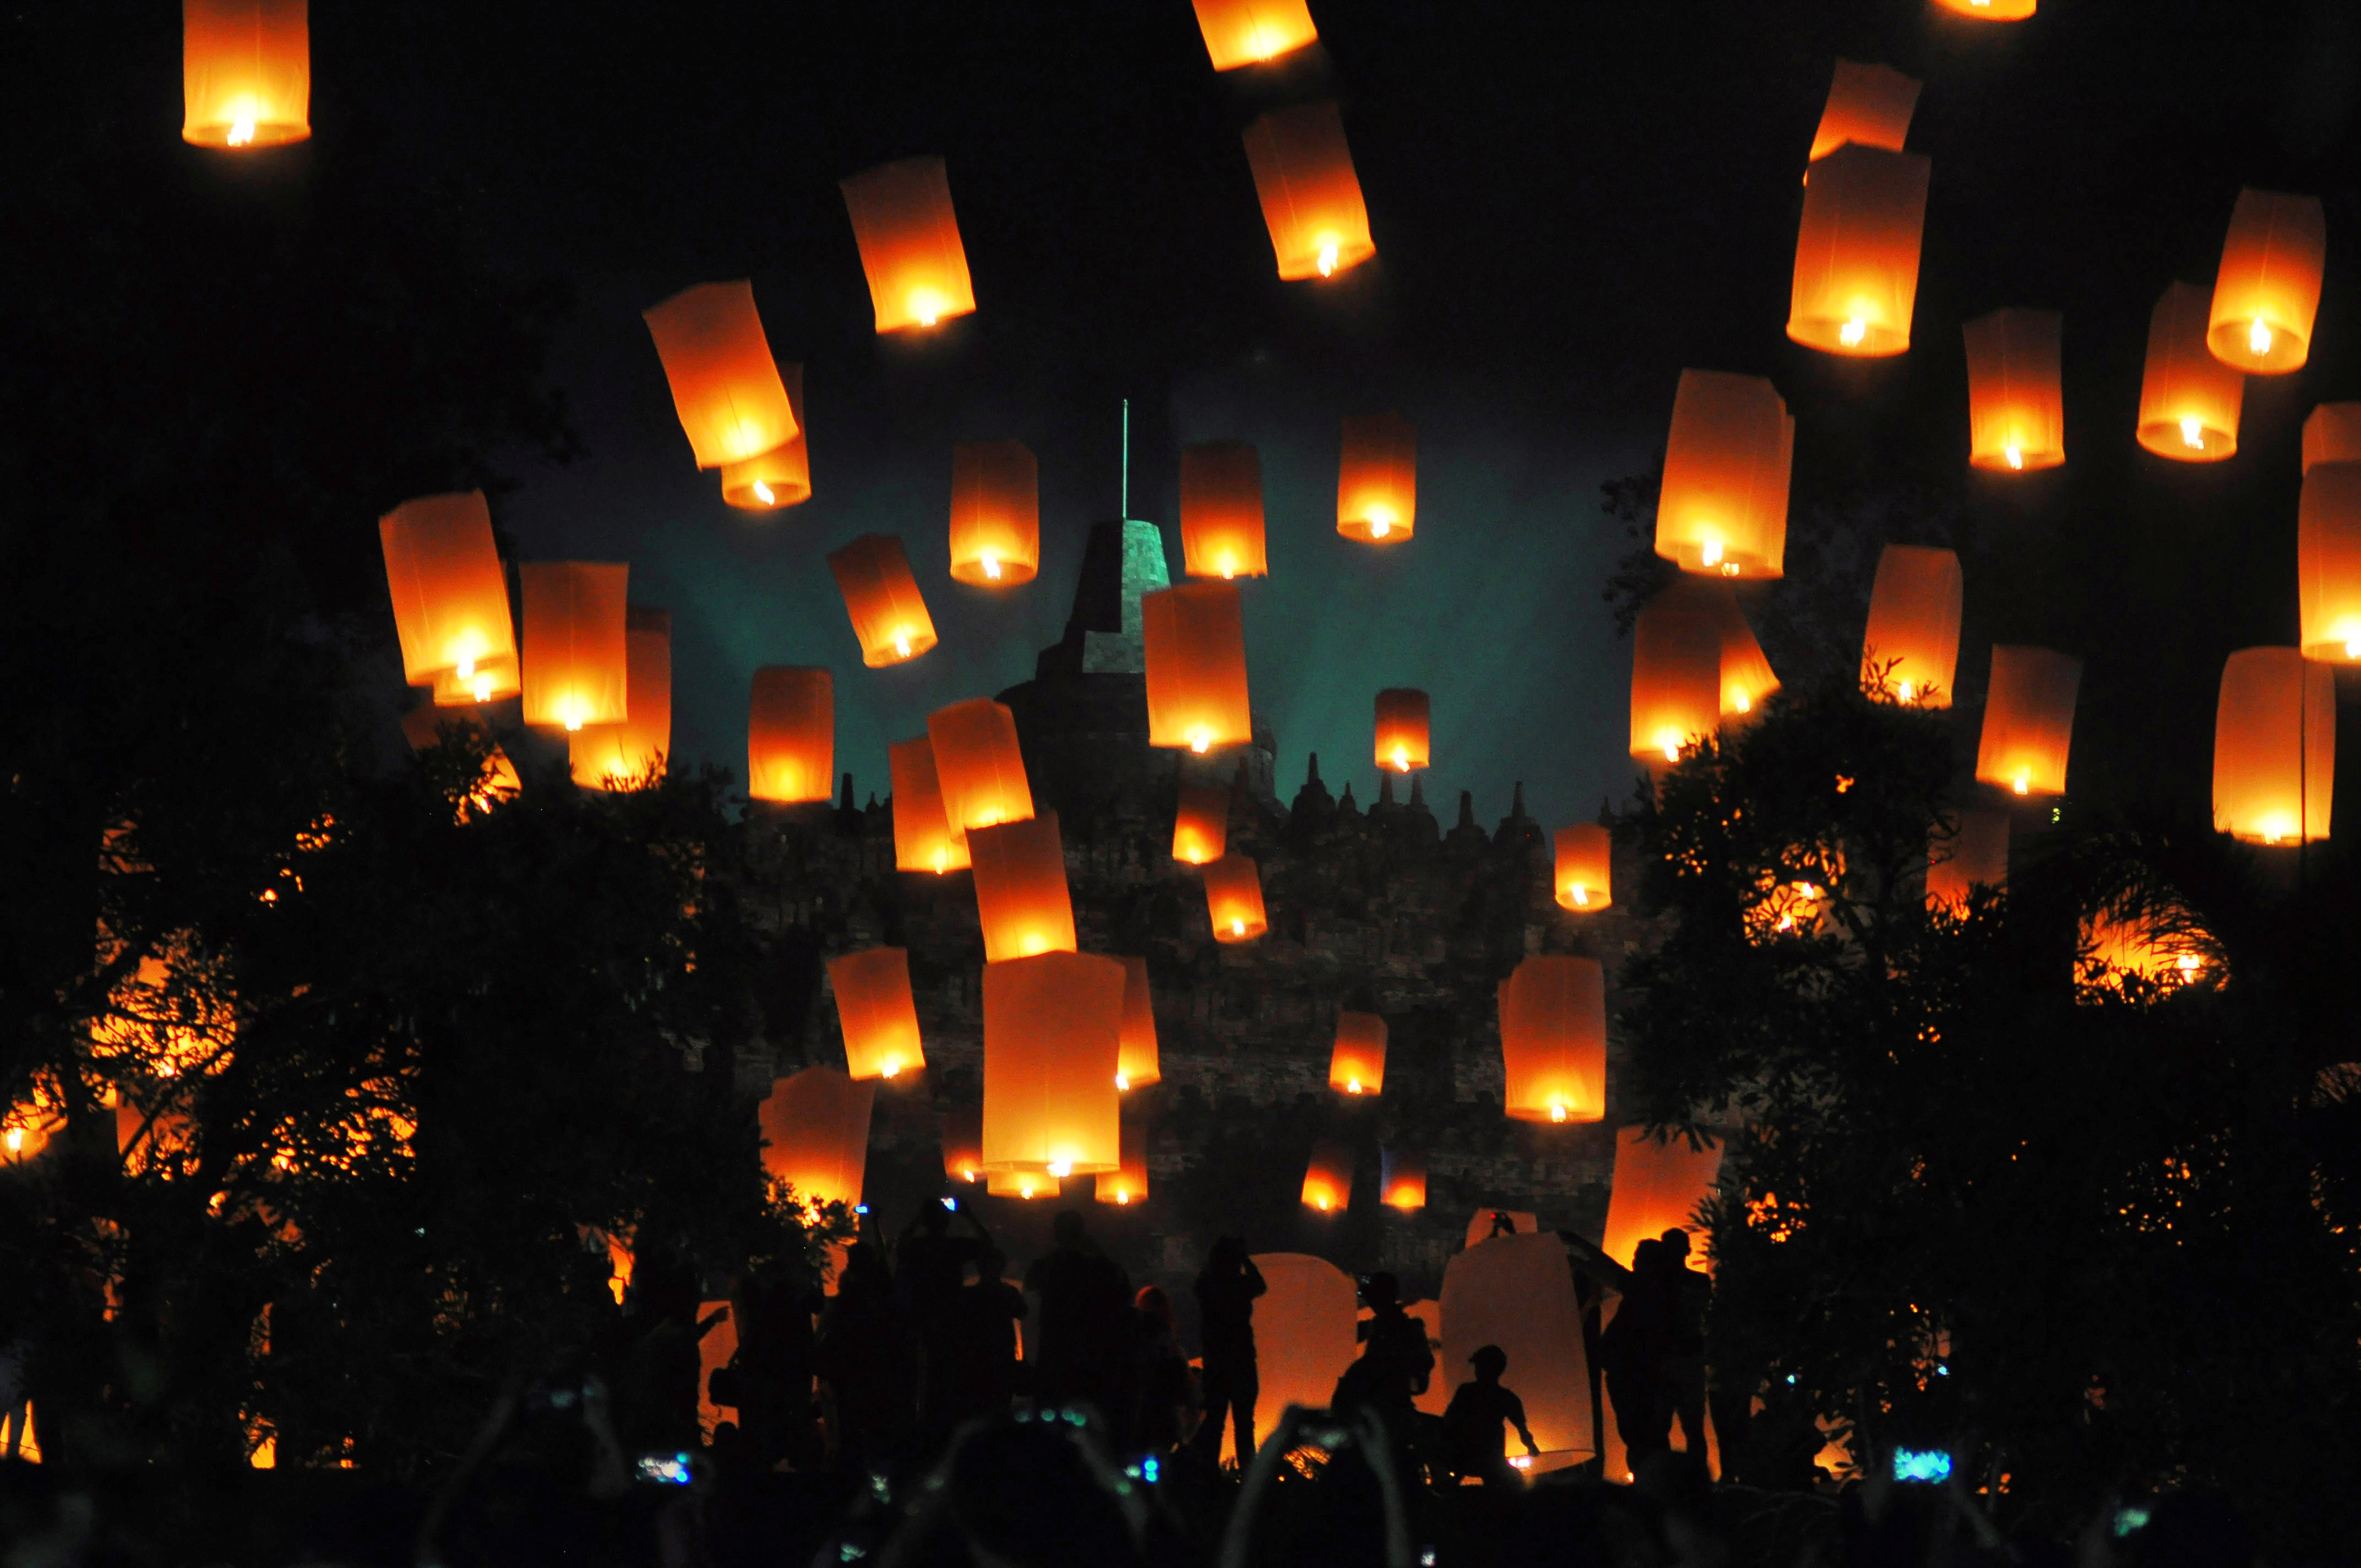 People fly lanterns at Borobudur temple in Indonesia's Magelang, during New Year celebrations. (Image Credit: Antara Foto Agency/Reuters)